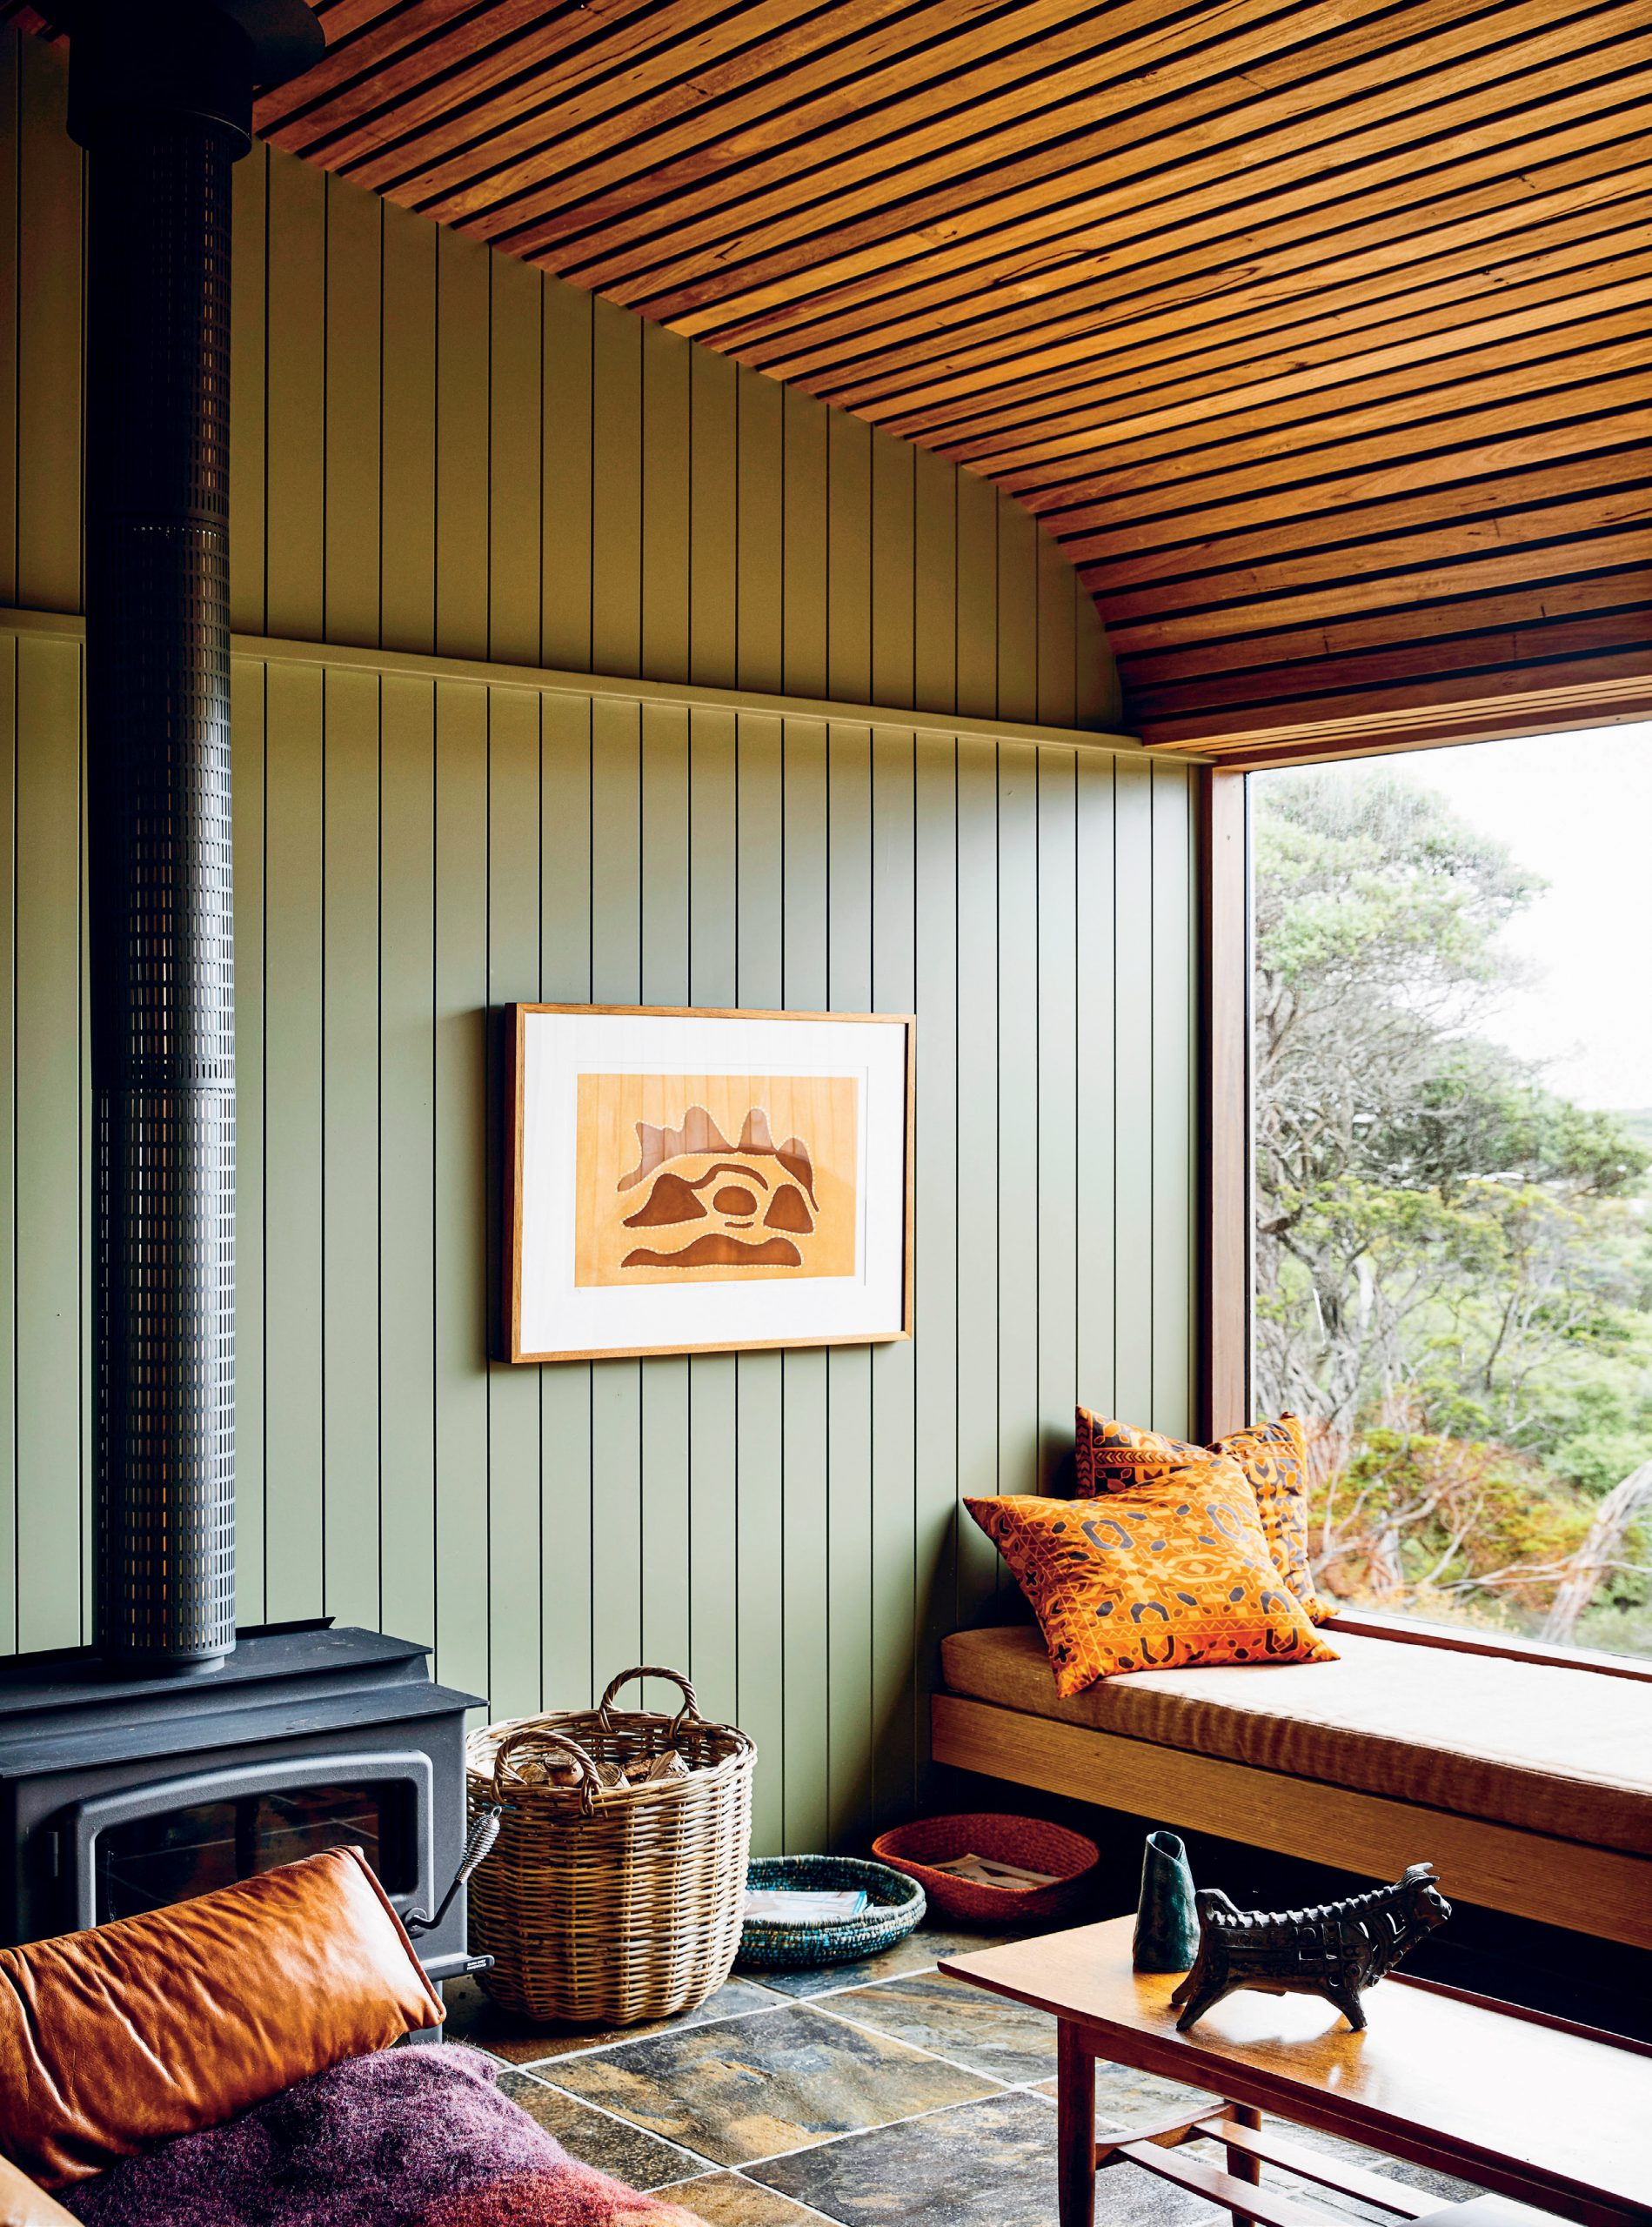 In the living area, an artwork by indigenous artist Shirley Purdie hangs next to the Nectre slow-combustion wood heater.